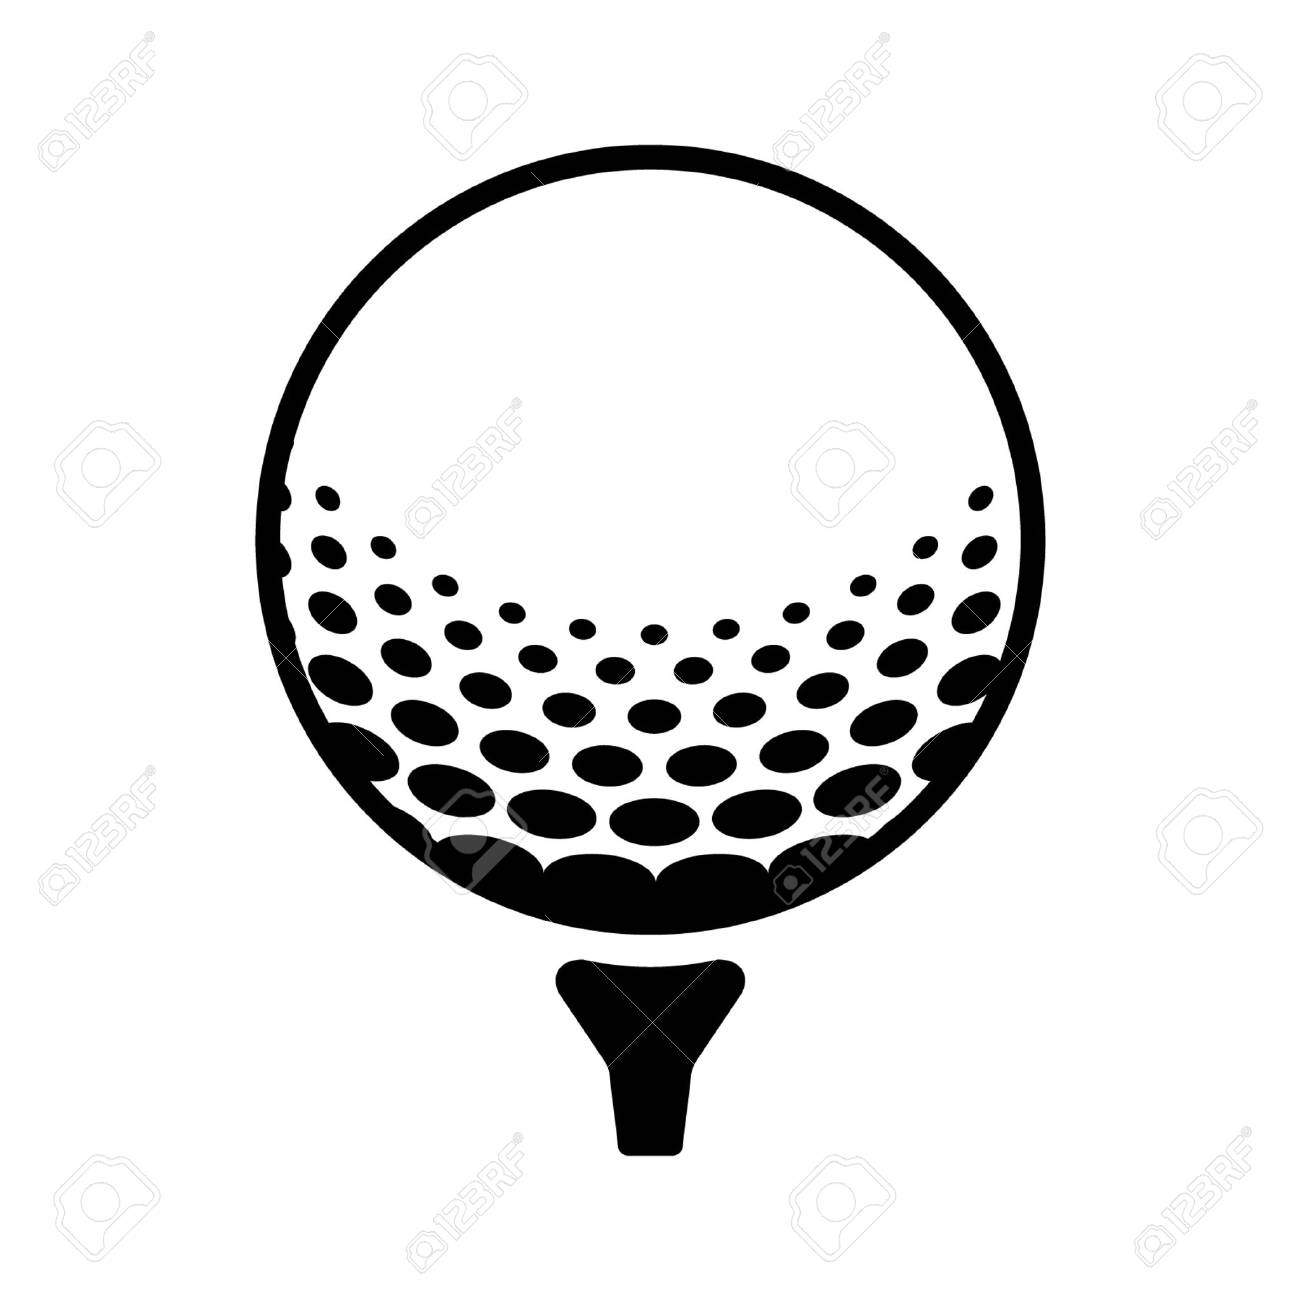 Golf ball on pin line art icon for sports apps and websites.